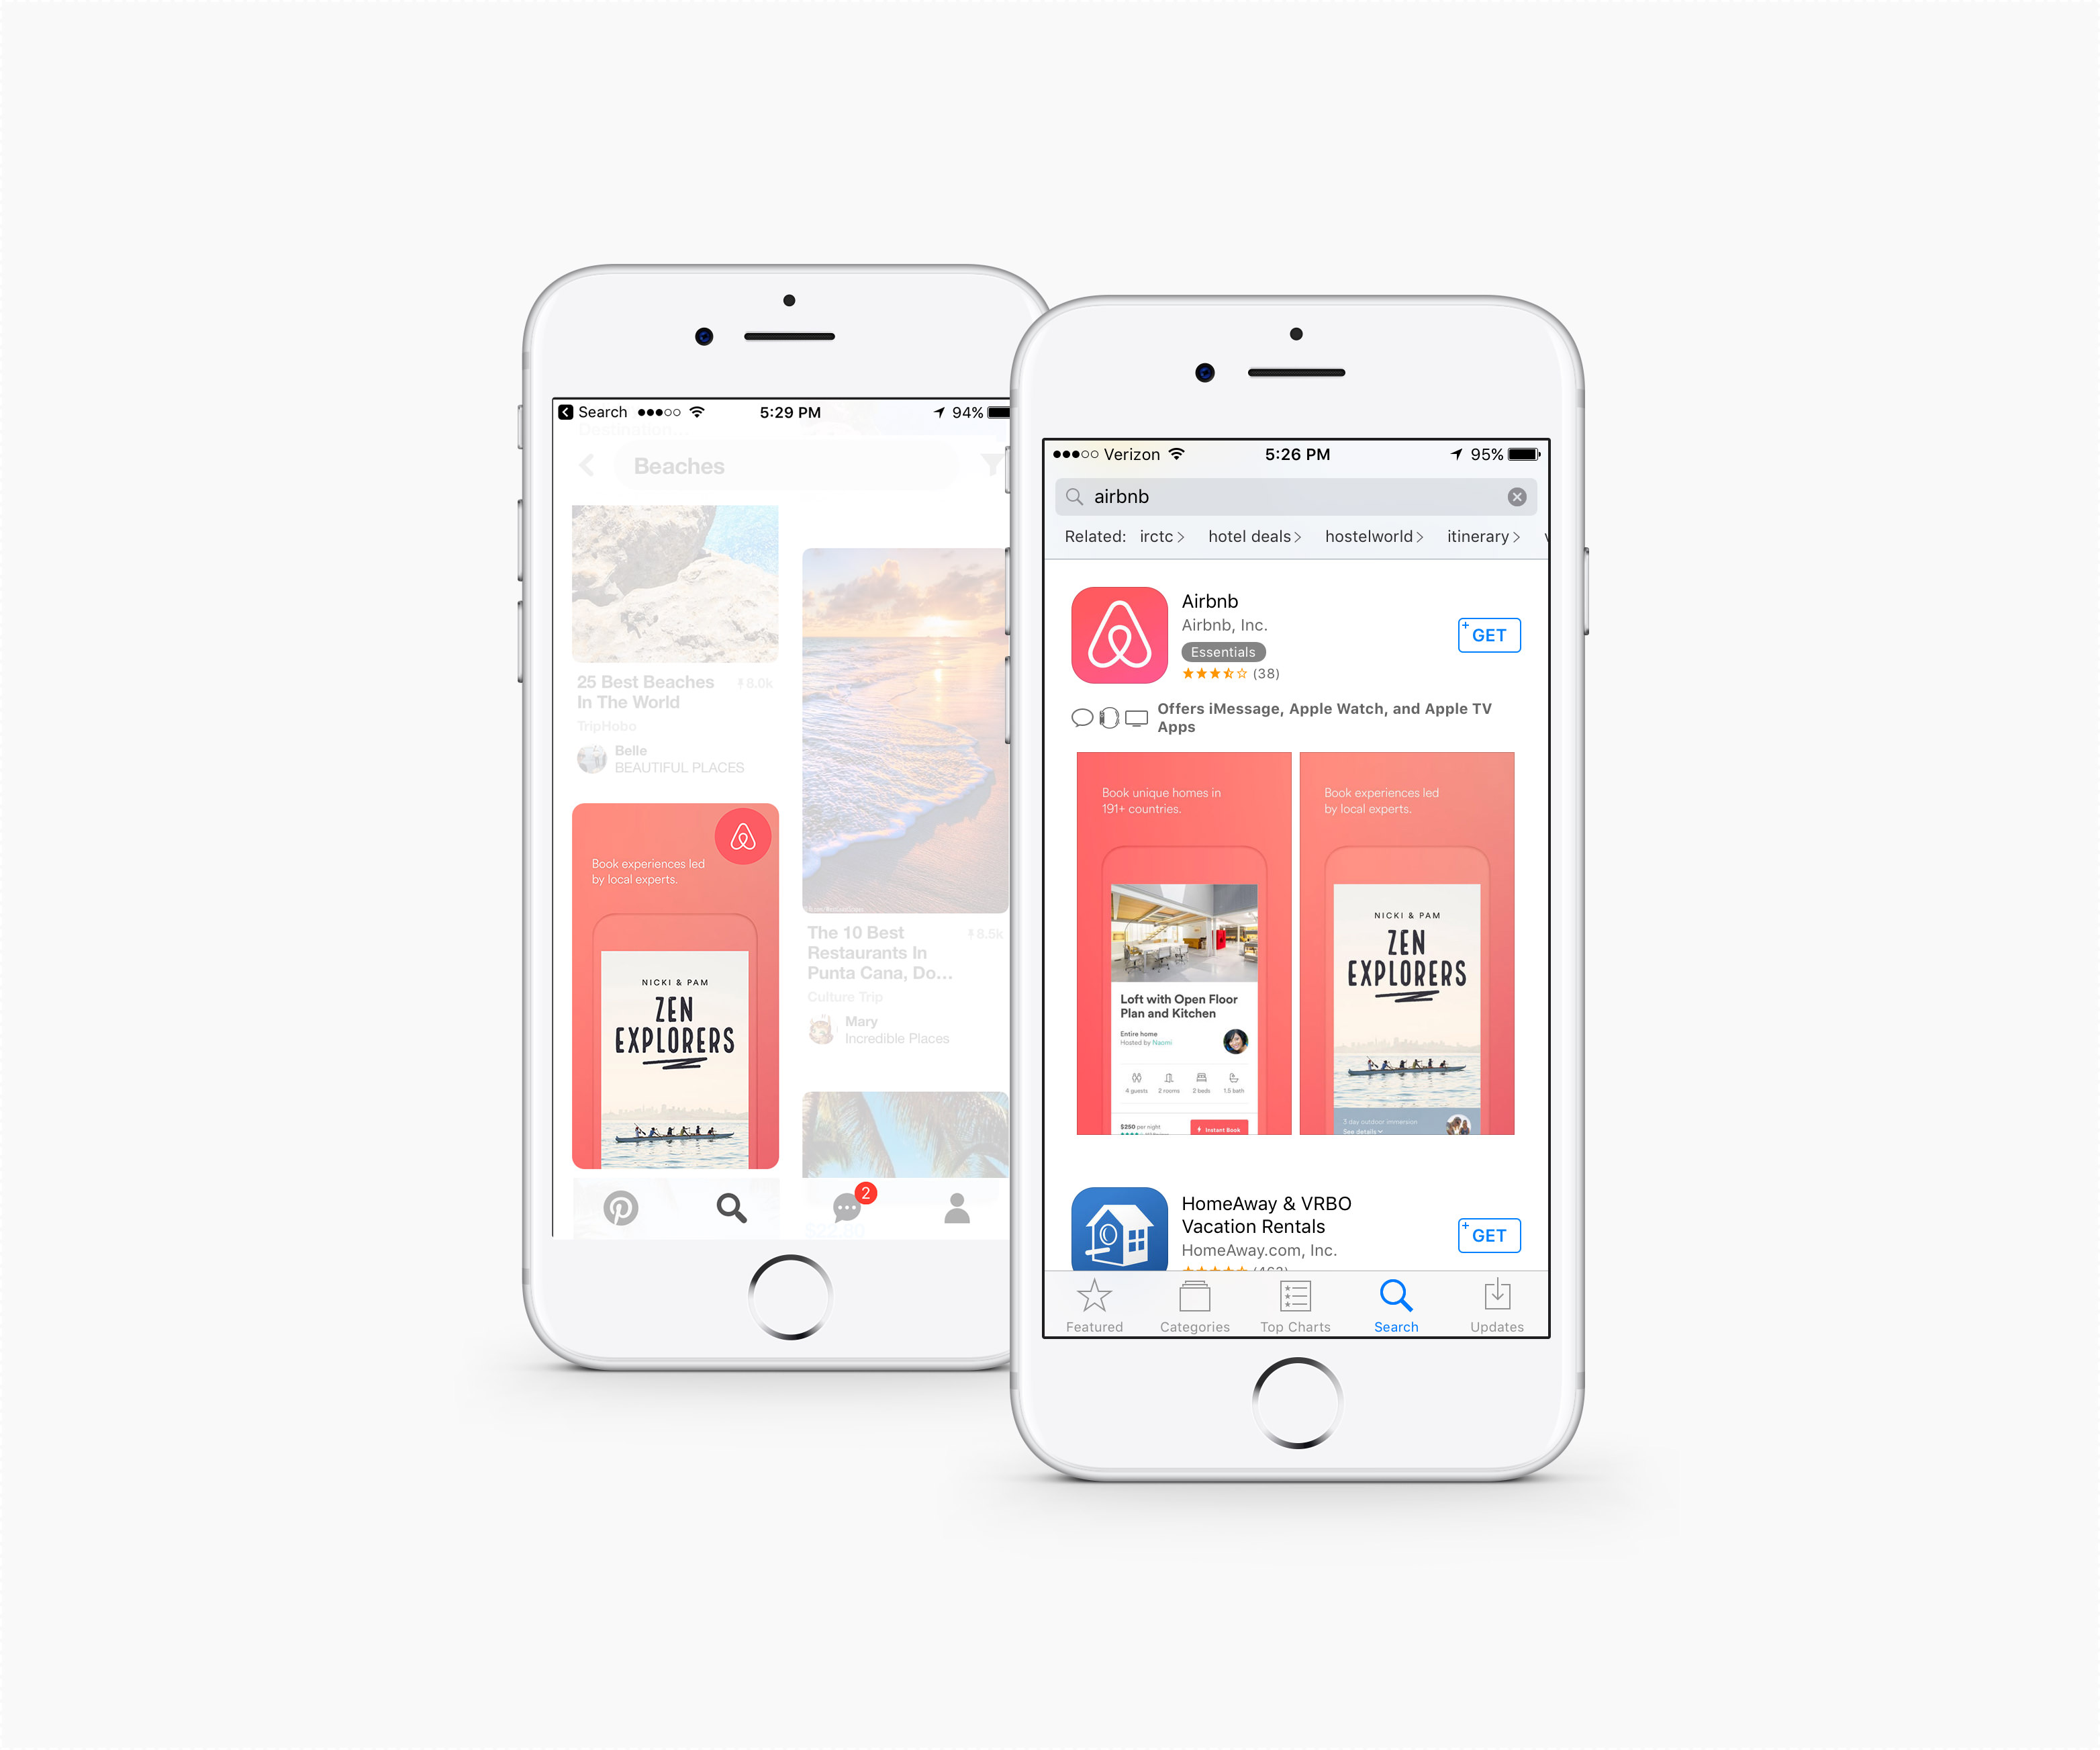 Two smartphones with Airbnb app images on Pinterest and Apple Store